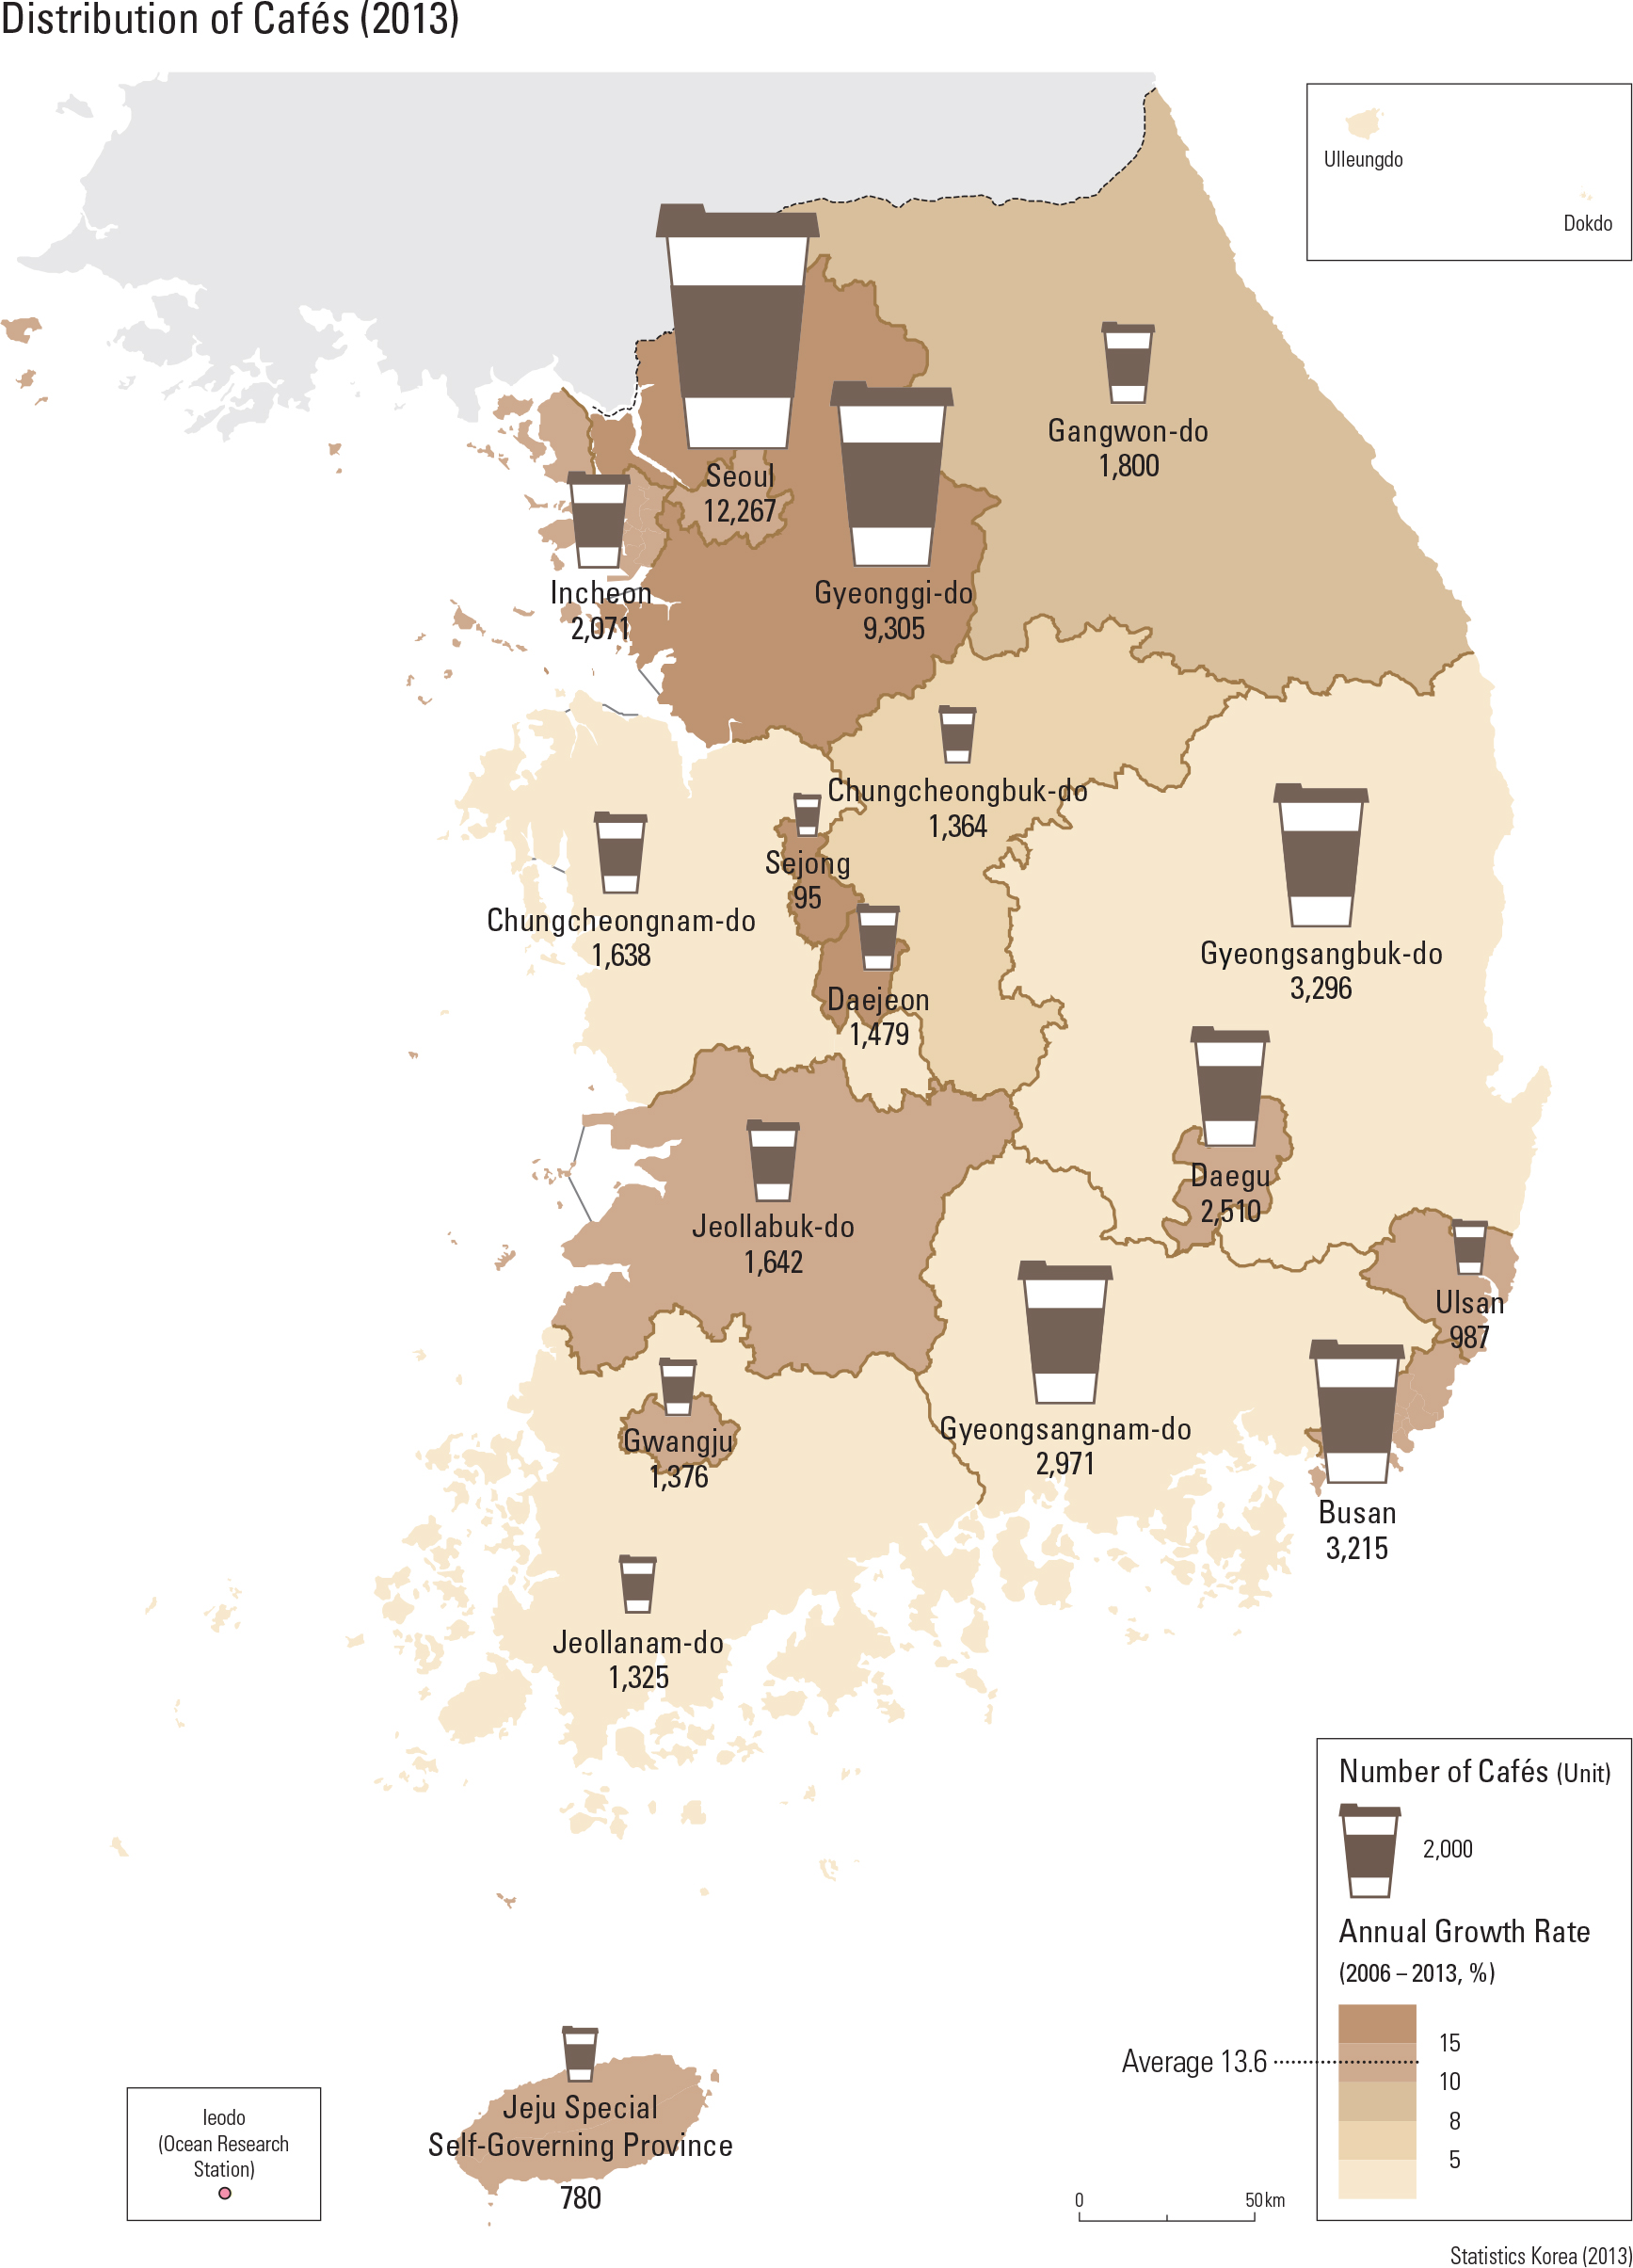 Distribution of Cafés (2013)